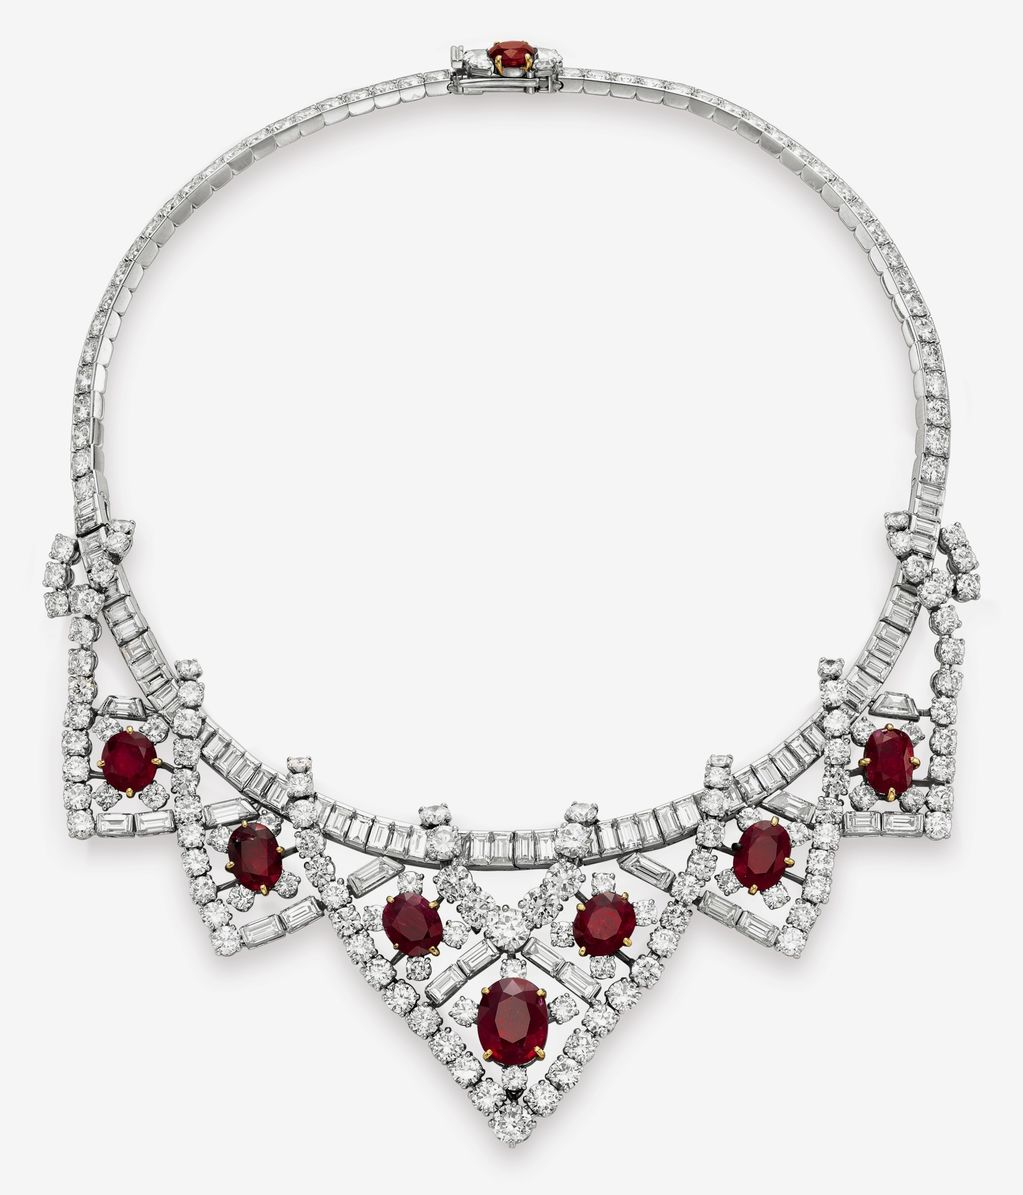 Free Ruby Necklace Cliparts, Download Free Clip Art, Free.